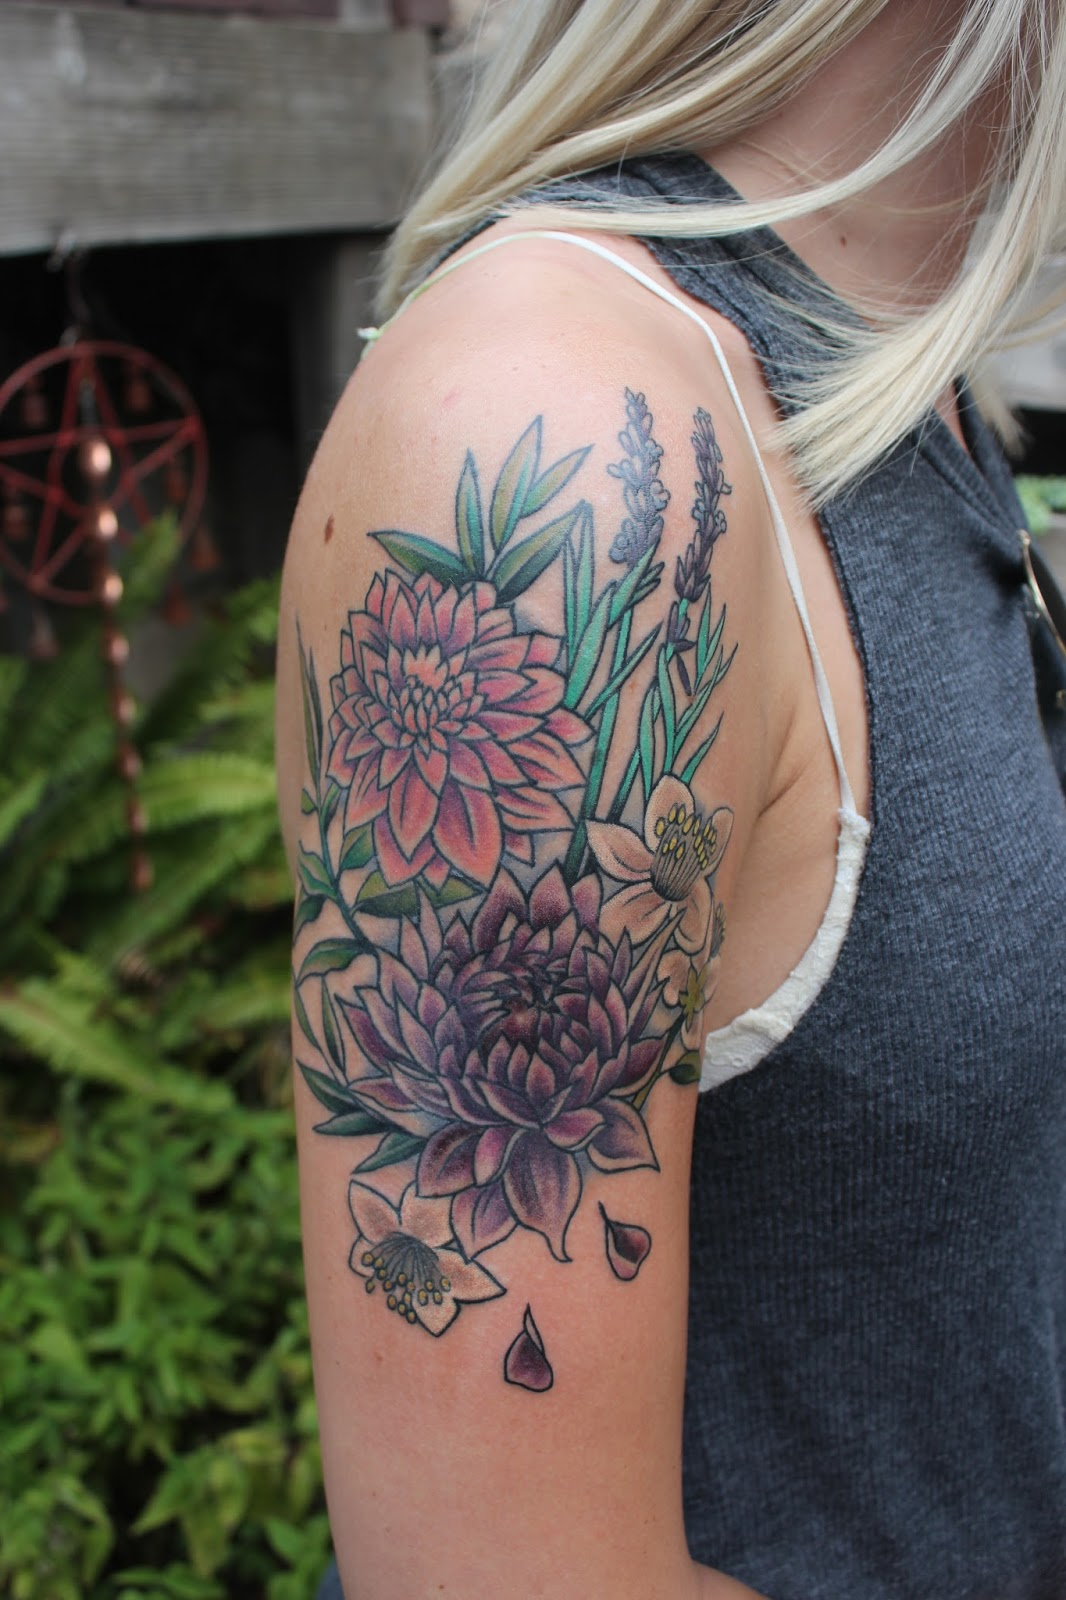 Tattoo Shop Confessions Tattoo Aftercare Ideas And Designs